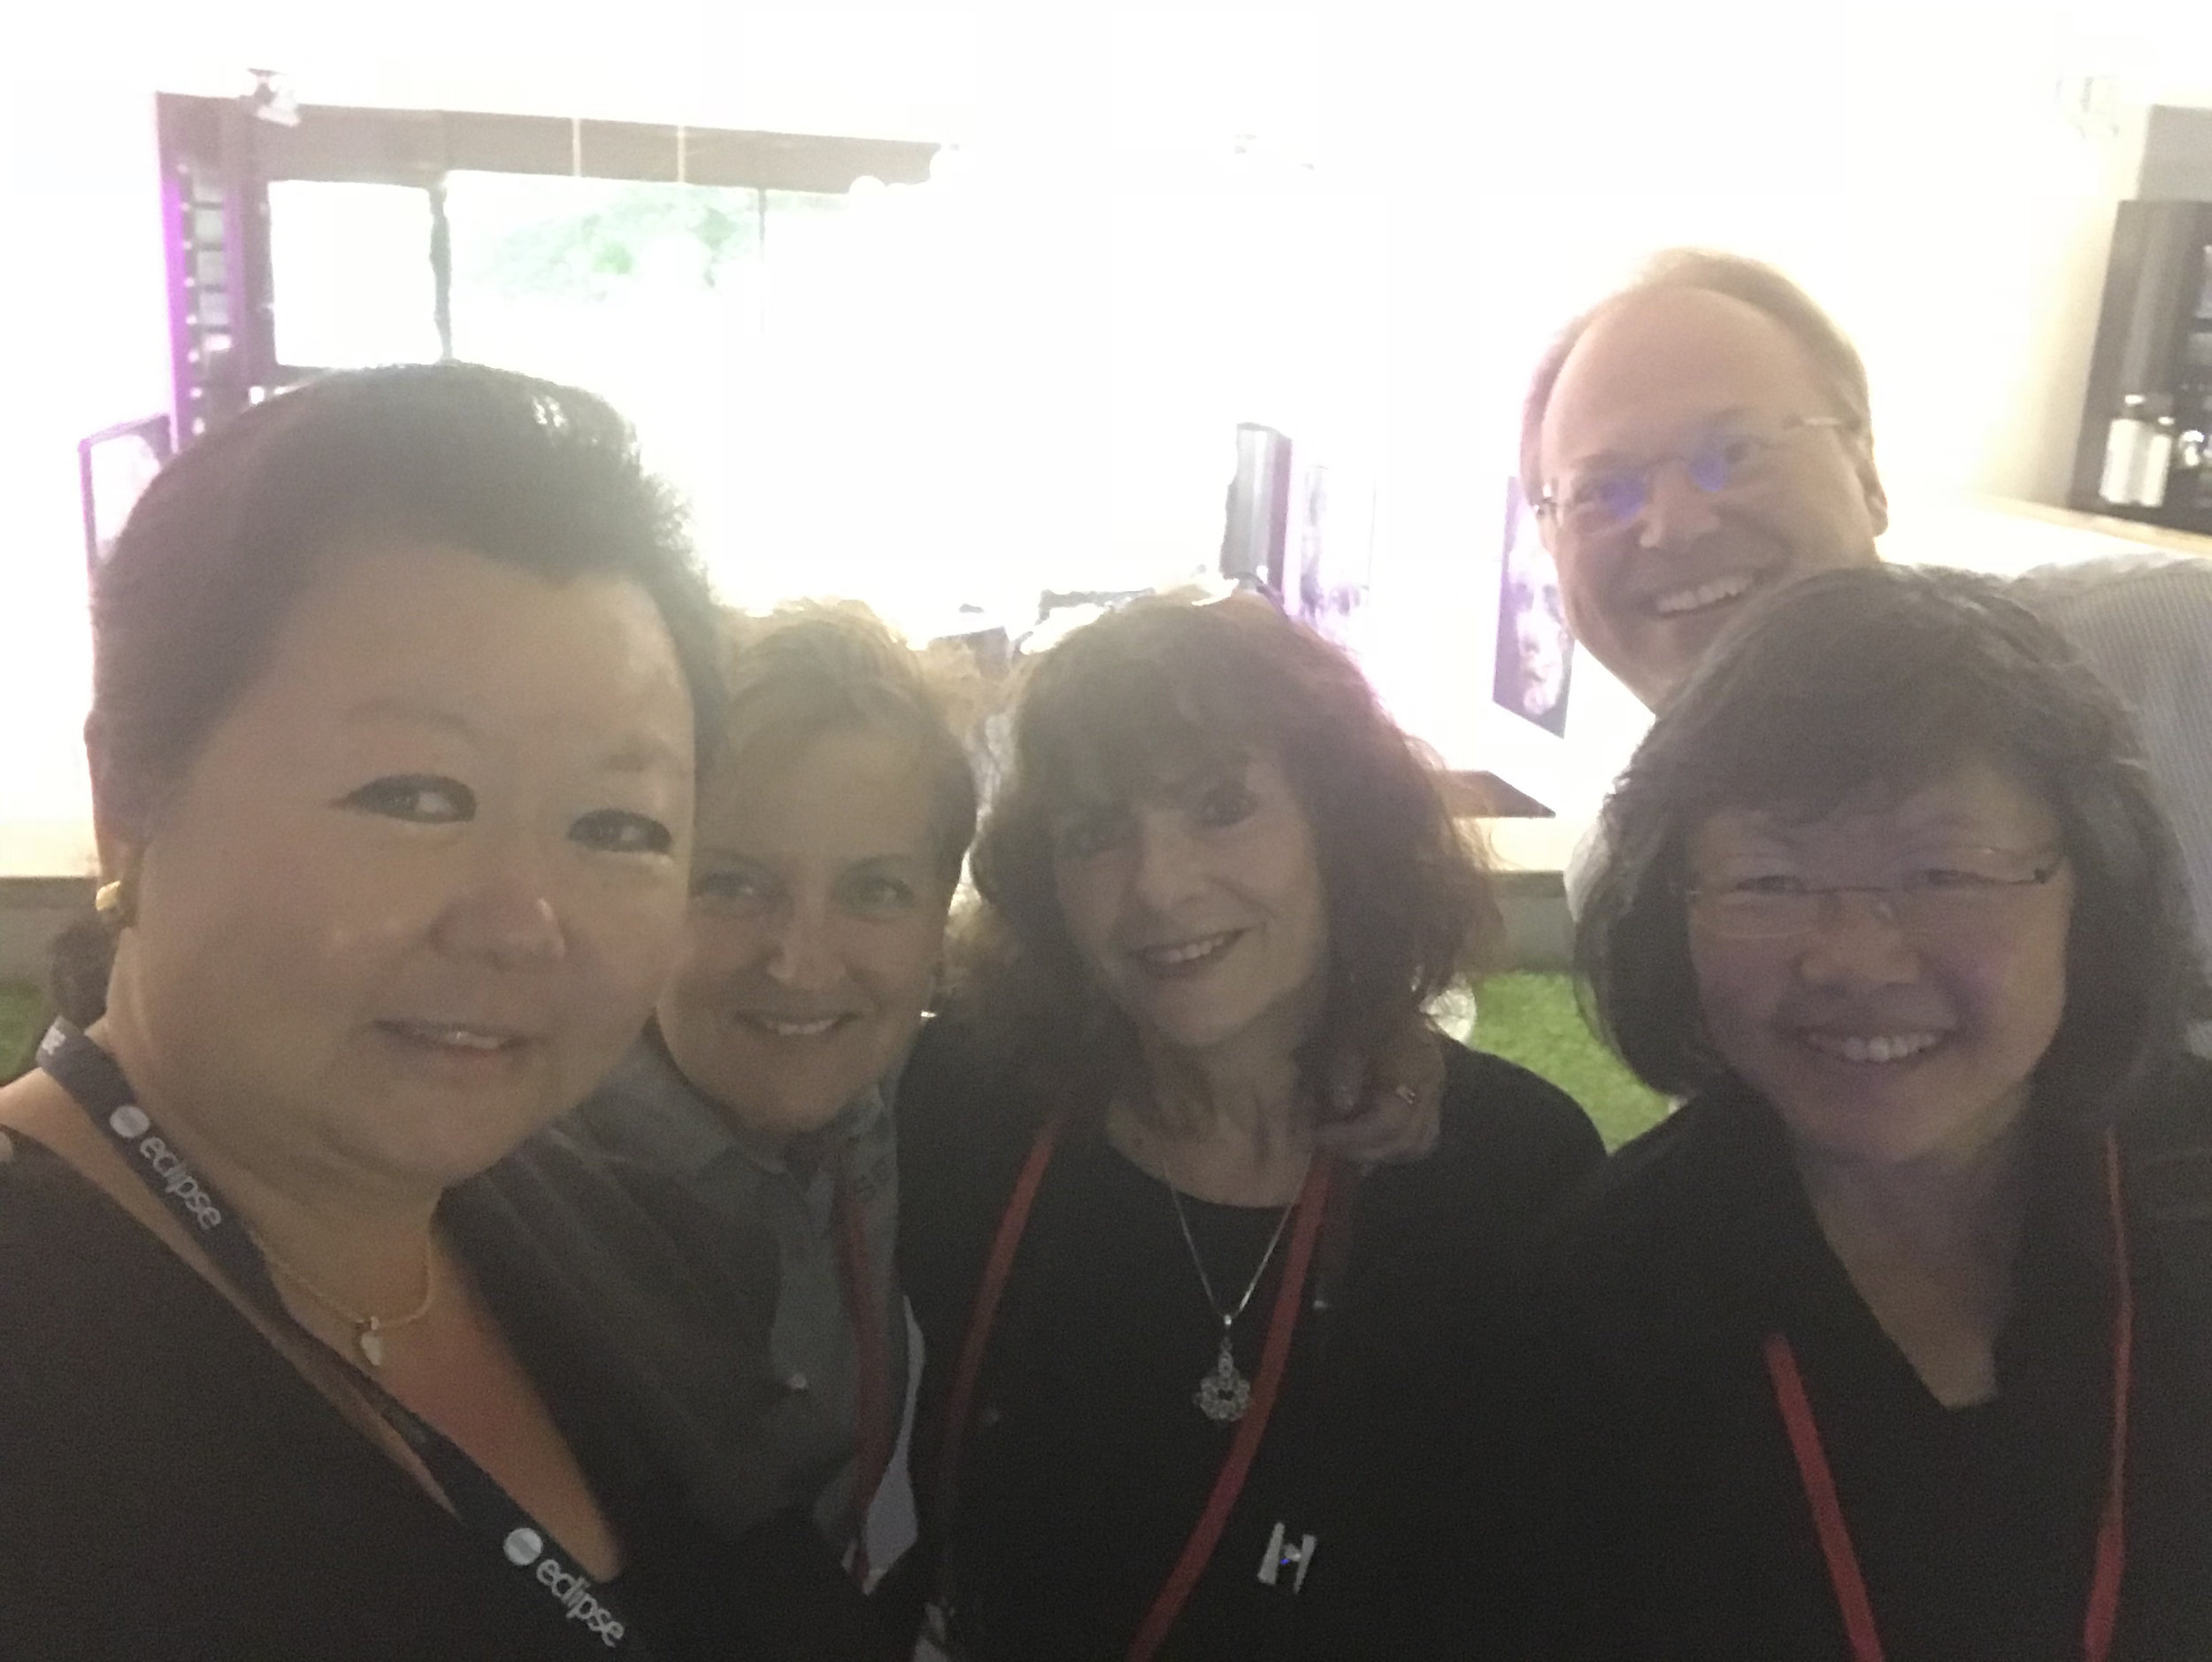 Nathalie Mindus at the EclipseCon unconference with the Eclipse team Perri Lavergne, Anne Jacko, Susan Iwai and Christopher Mindus